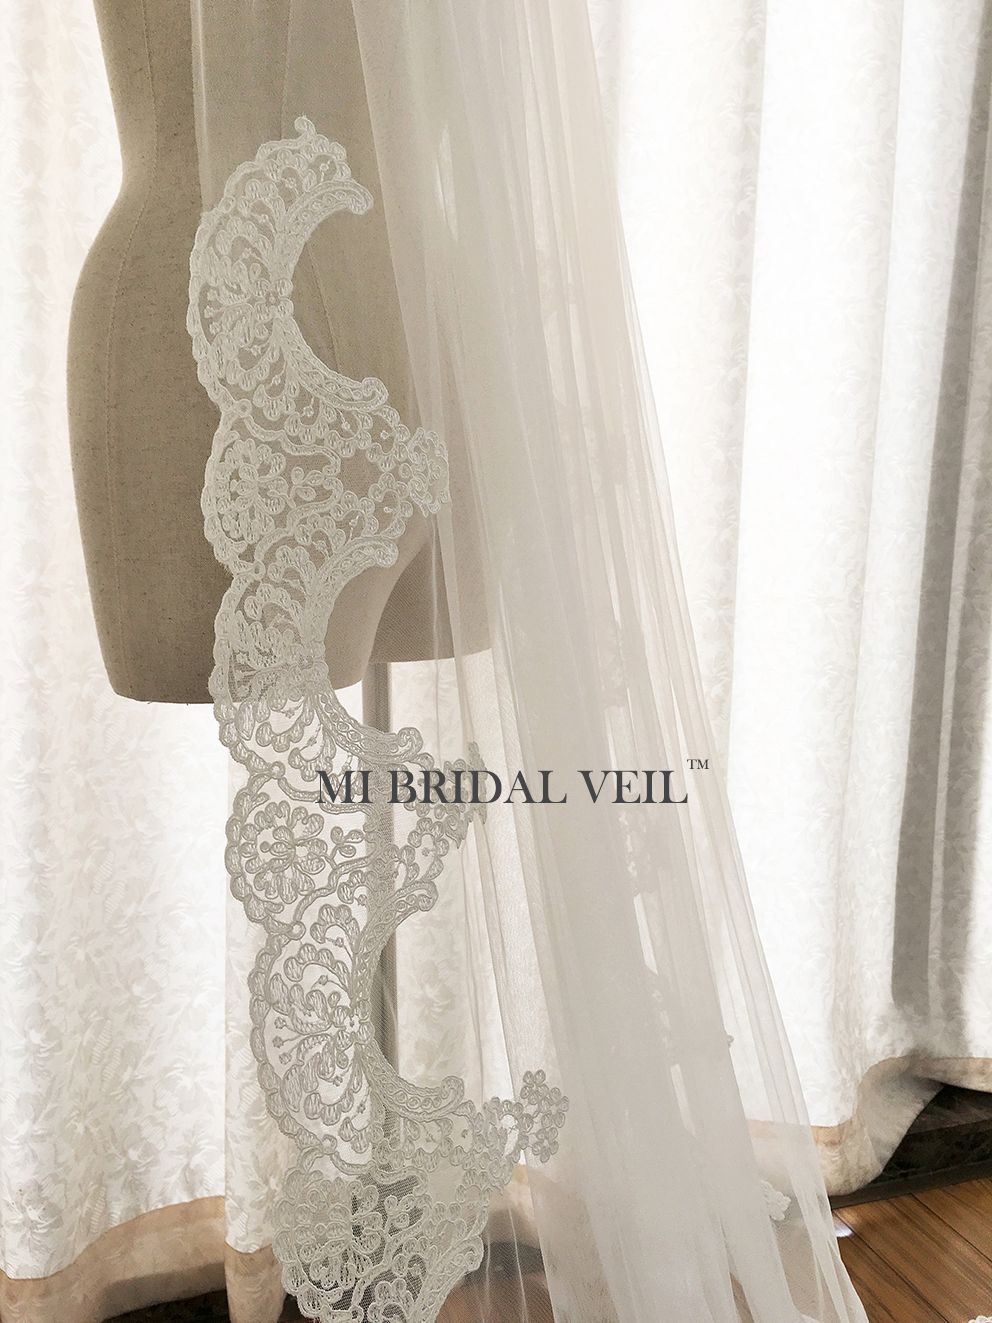 Cathedral Wedding Veil, Edwardian Inspired Lace at Hip, Mi